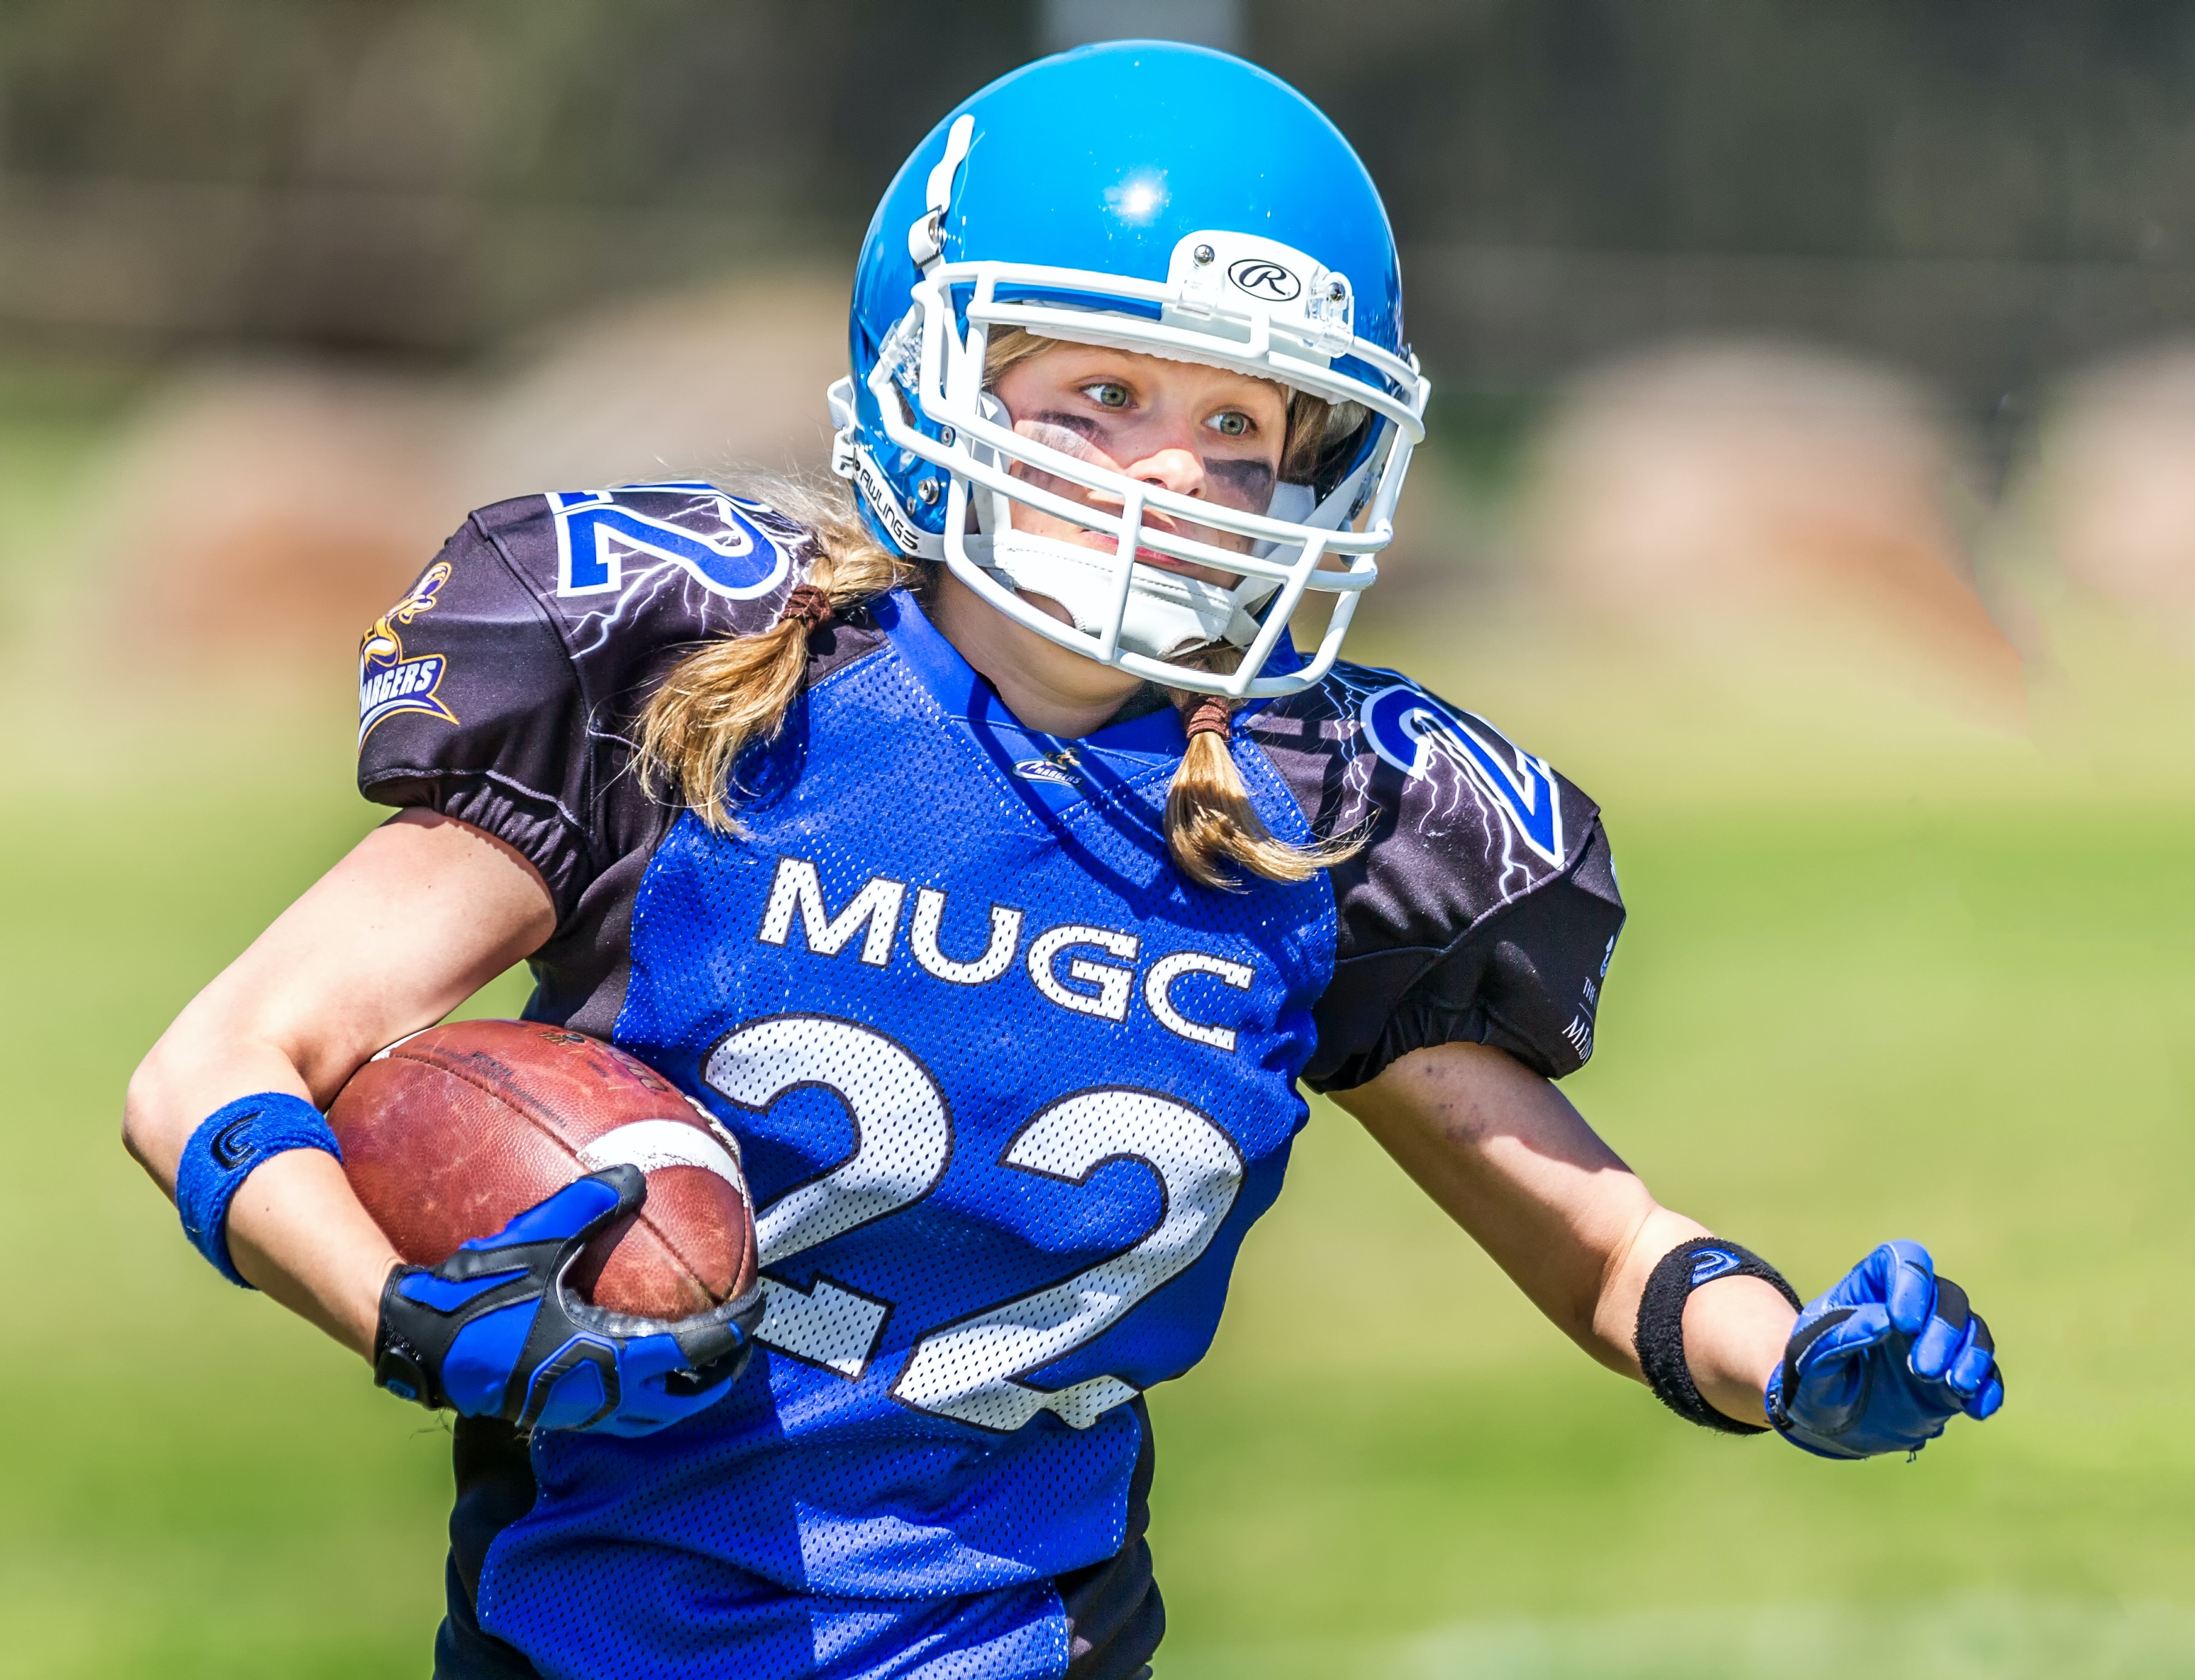 woman in blue helmet playing football